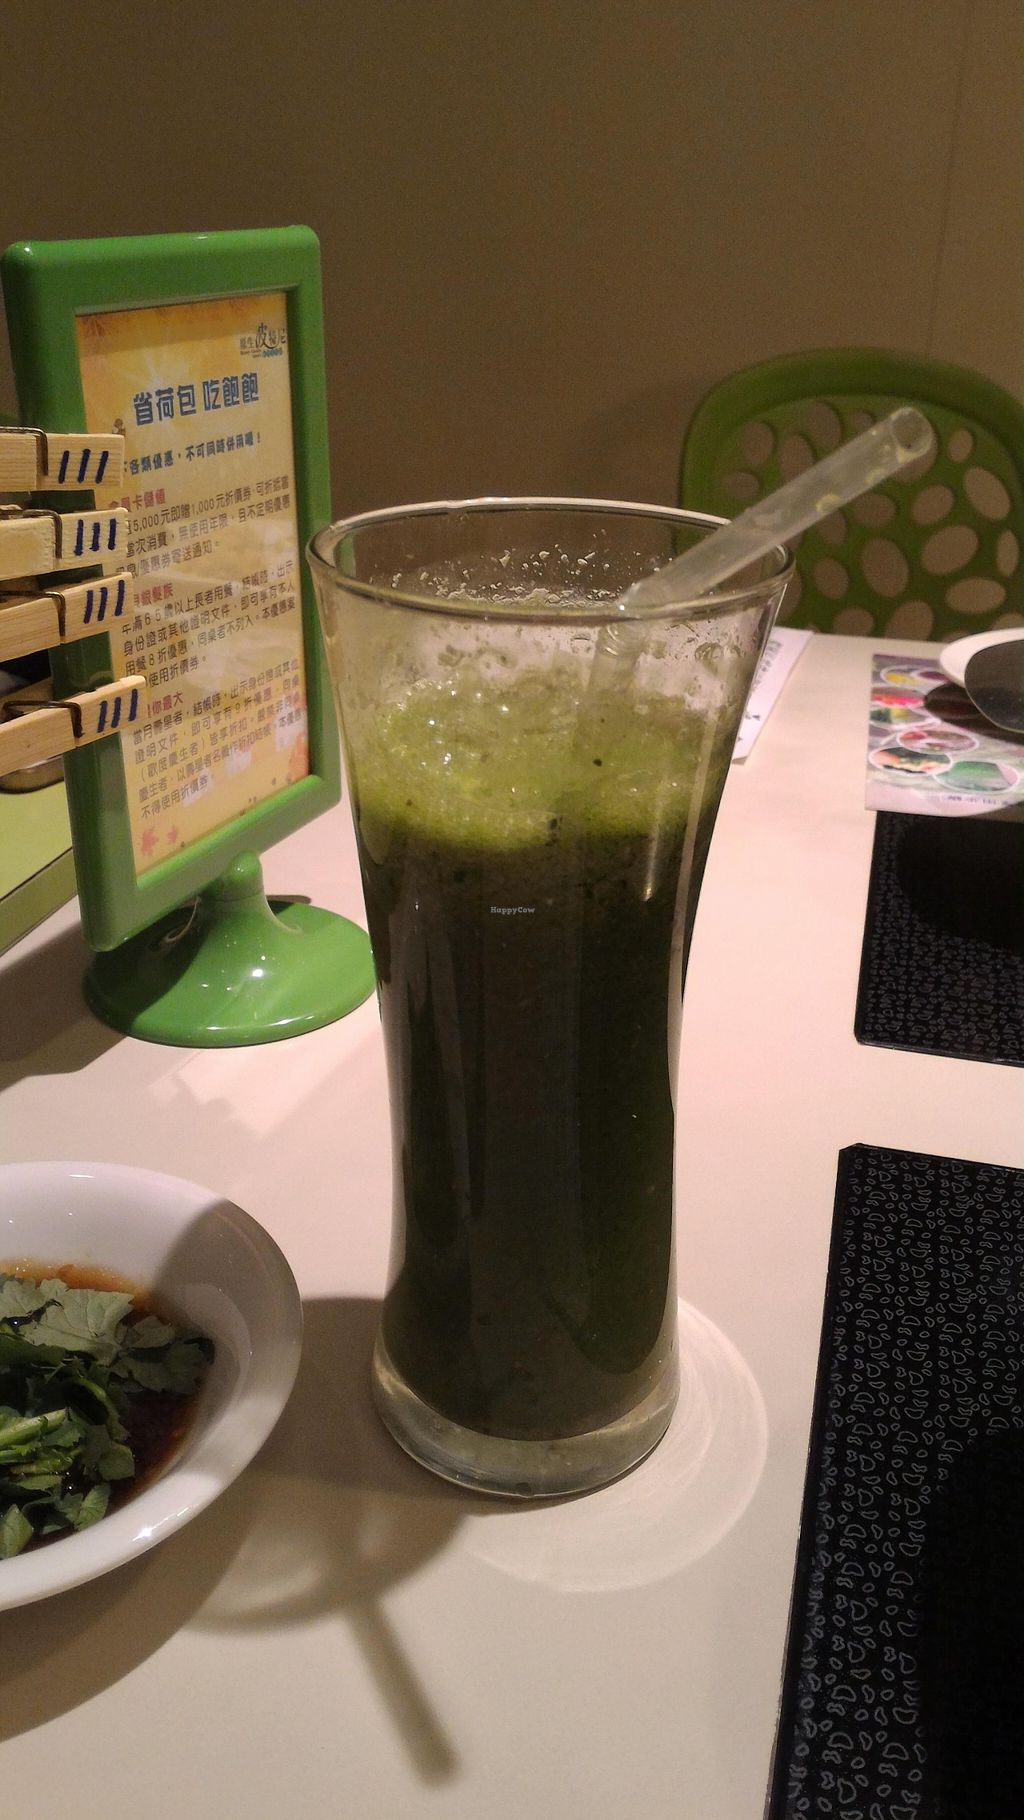 "Photo of Botany Garden  by <a href=""/members/profile/KellyHsuan"">KellyHsuan</a> <br/>Green smoothie !!! <br/> November 14, 2015  - <a href='/contact/abuse/image/65747/124996'>Report</a>"